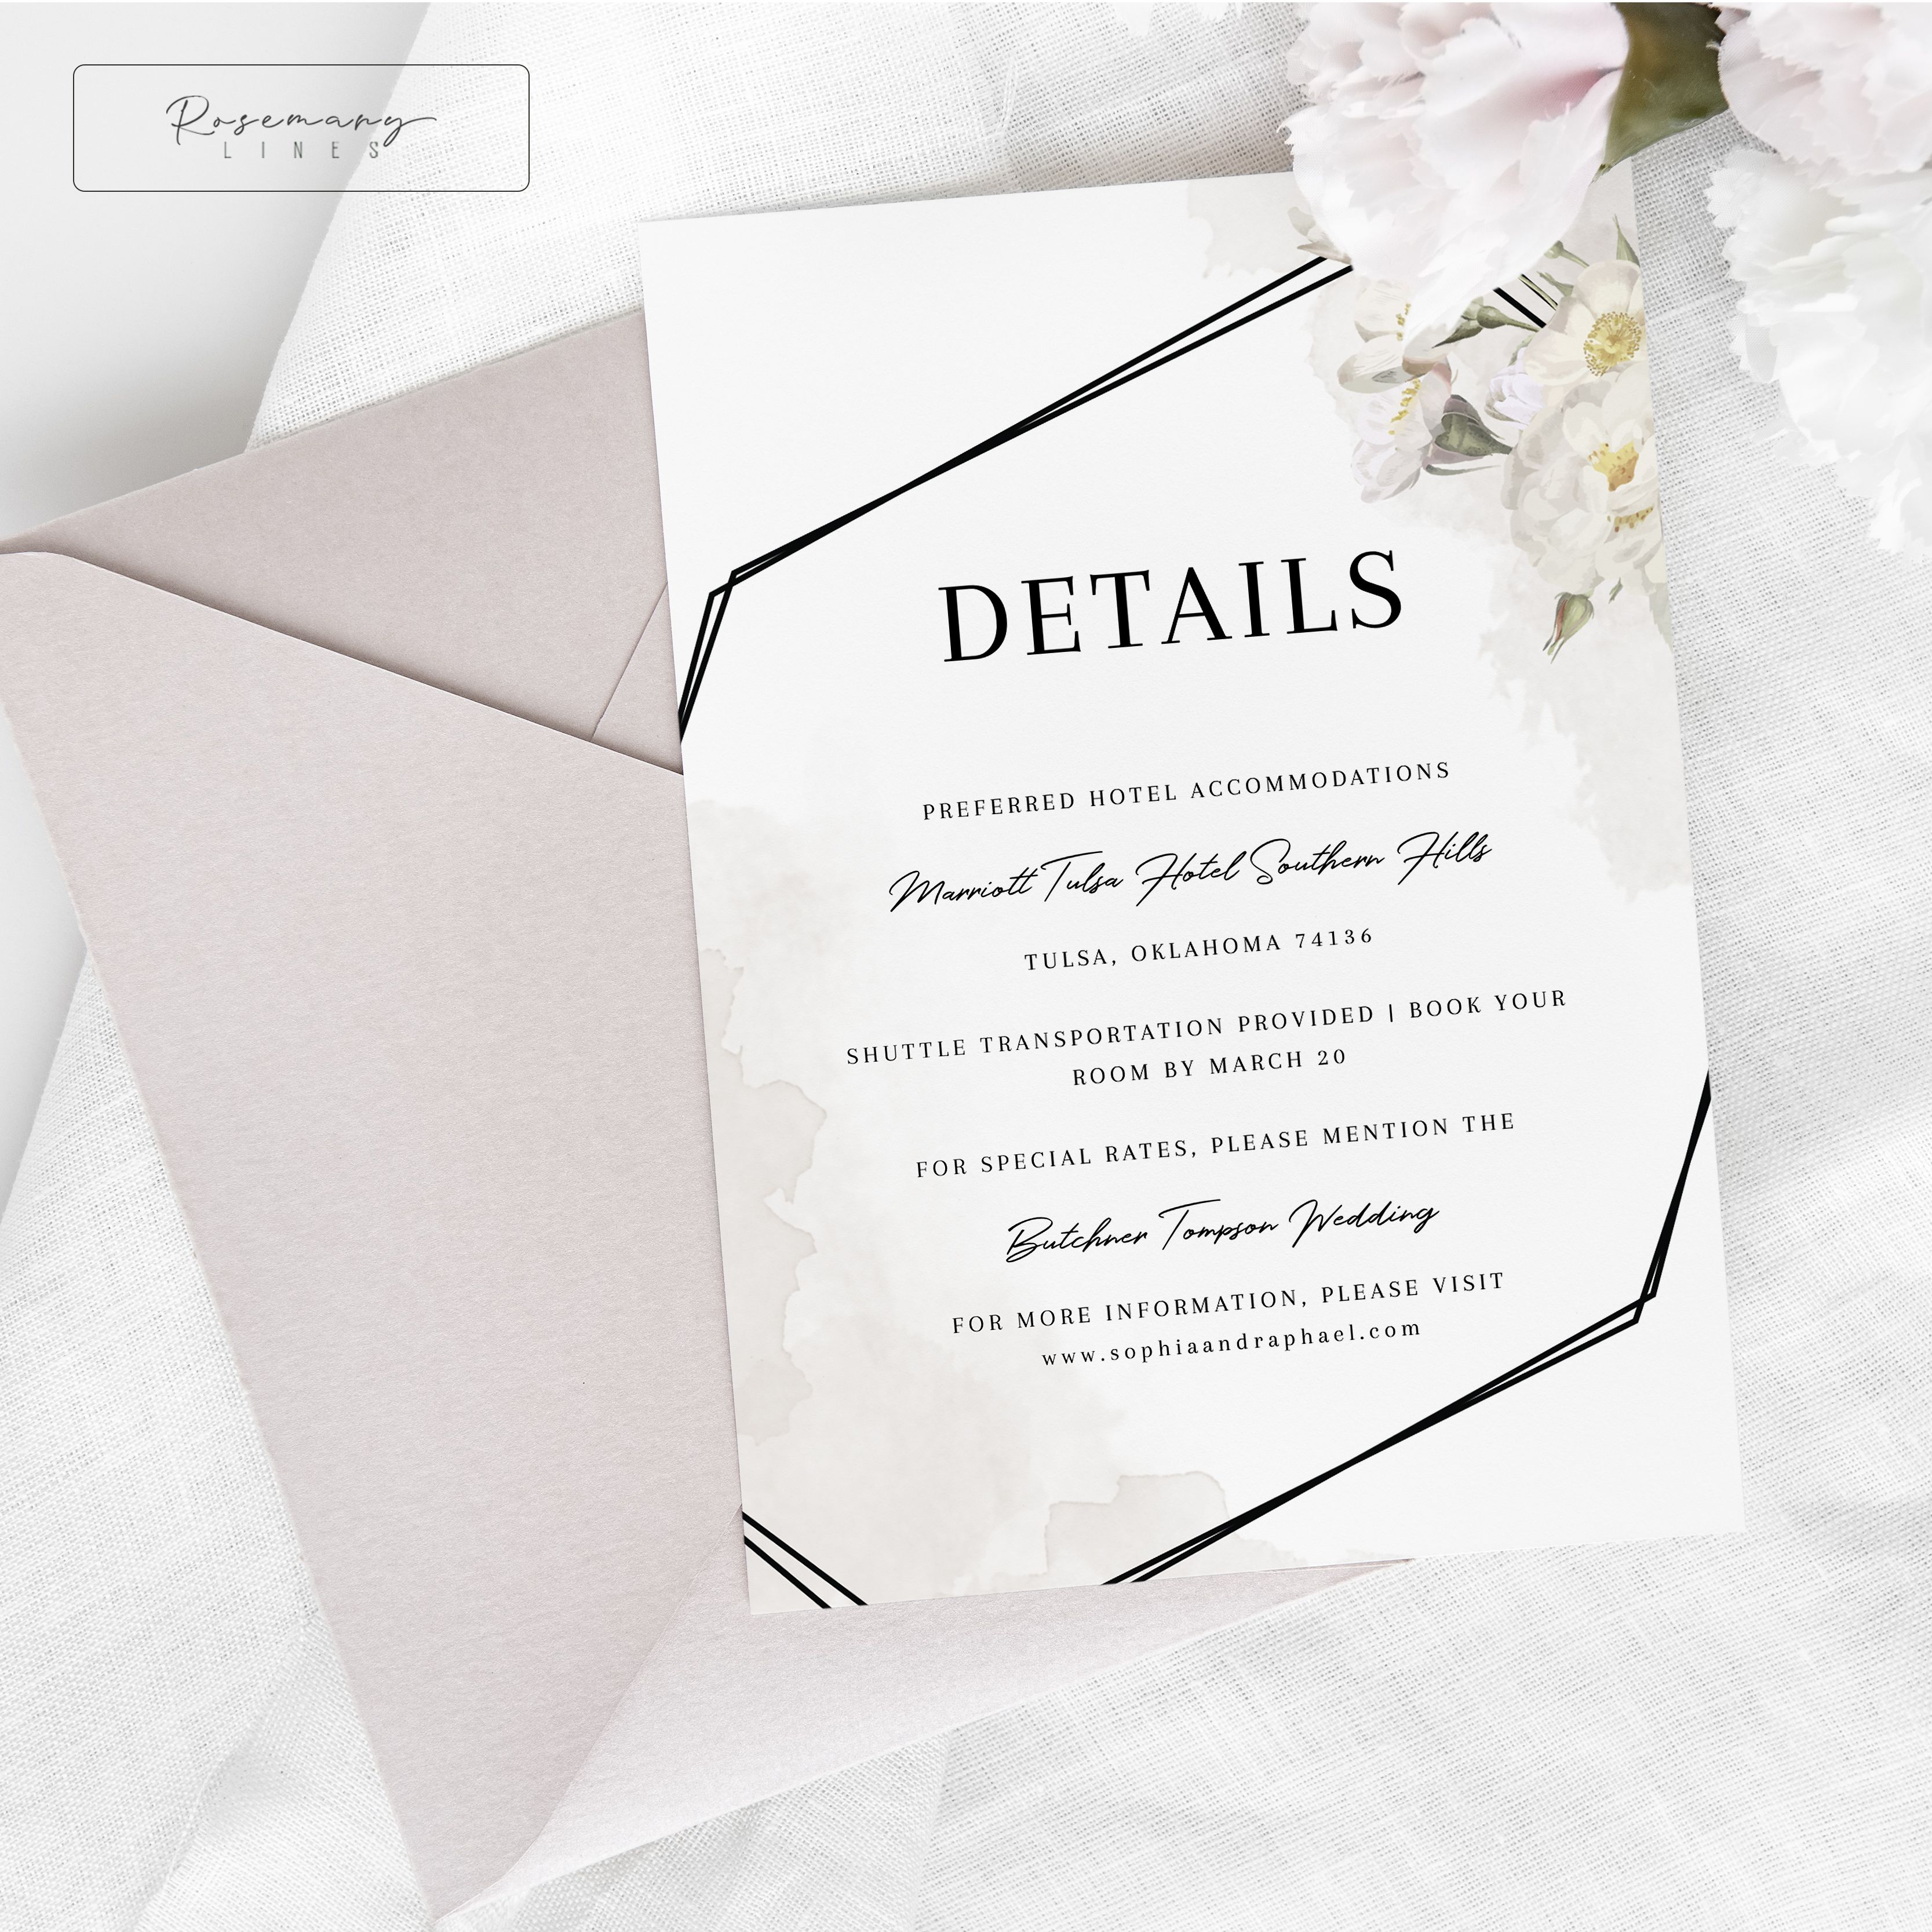 White Floral Geometric Wedding Details Template Instant Download Try Before You Buy Geometric Wedding Geometric Wedding Invitation Wedding Details Card